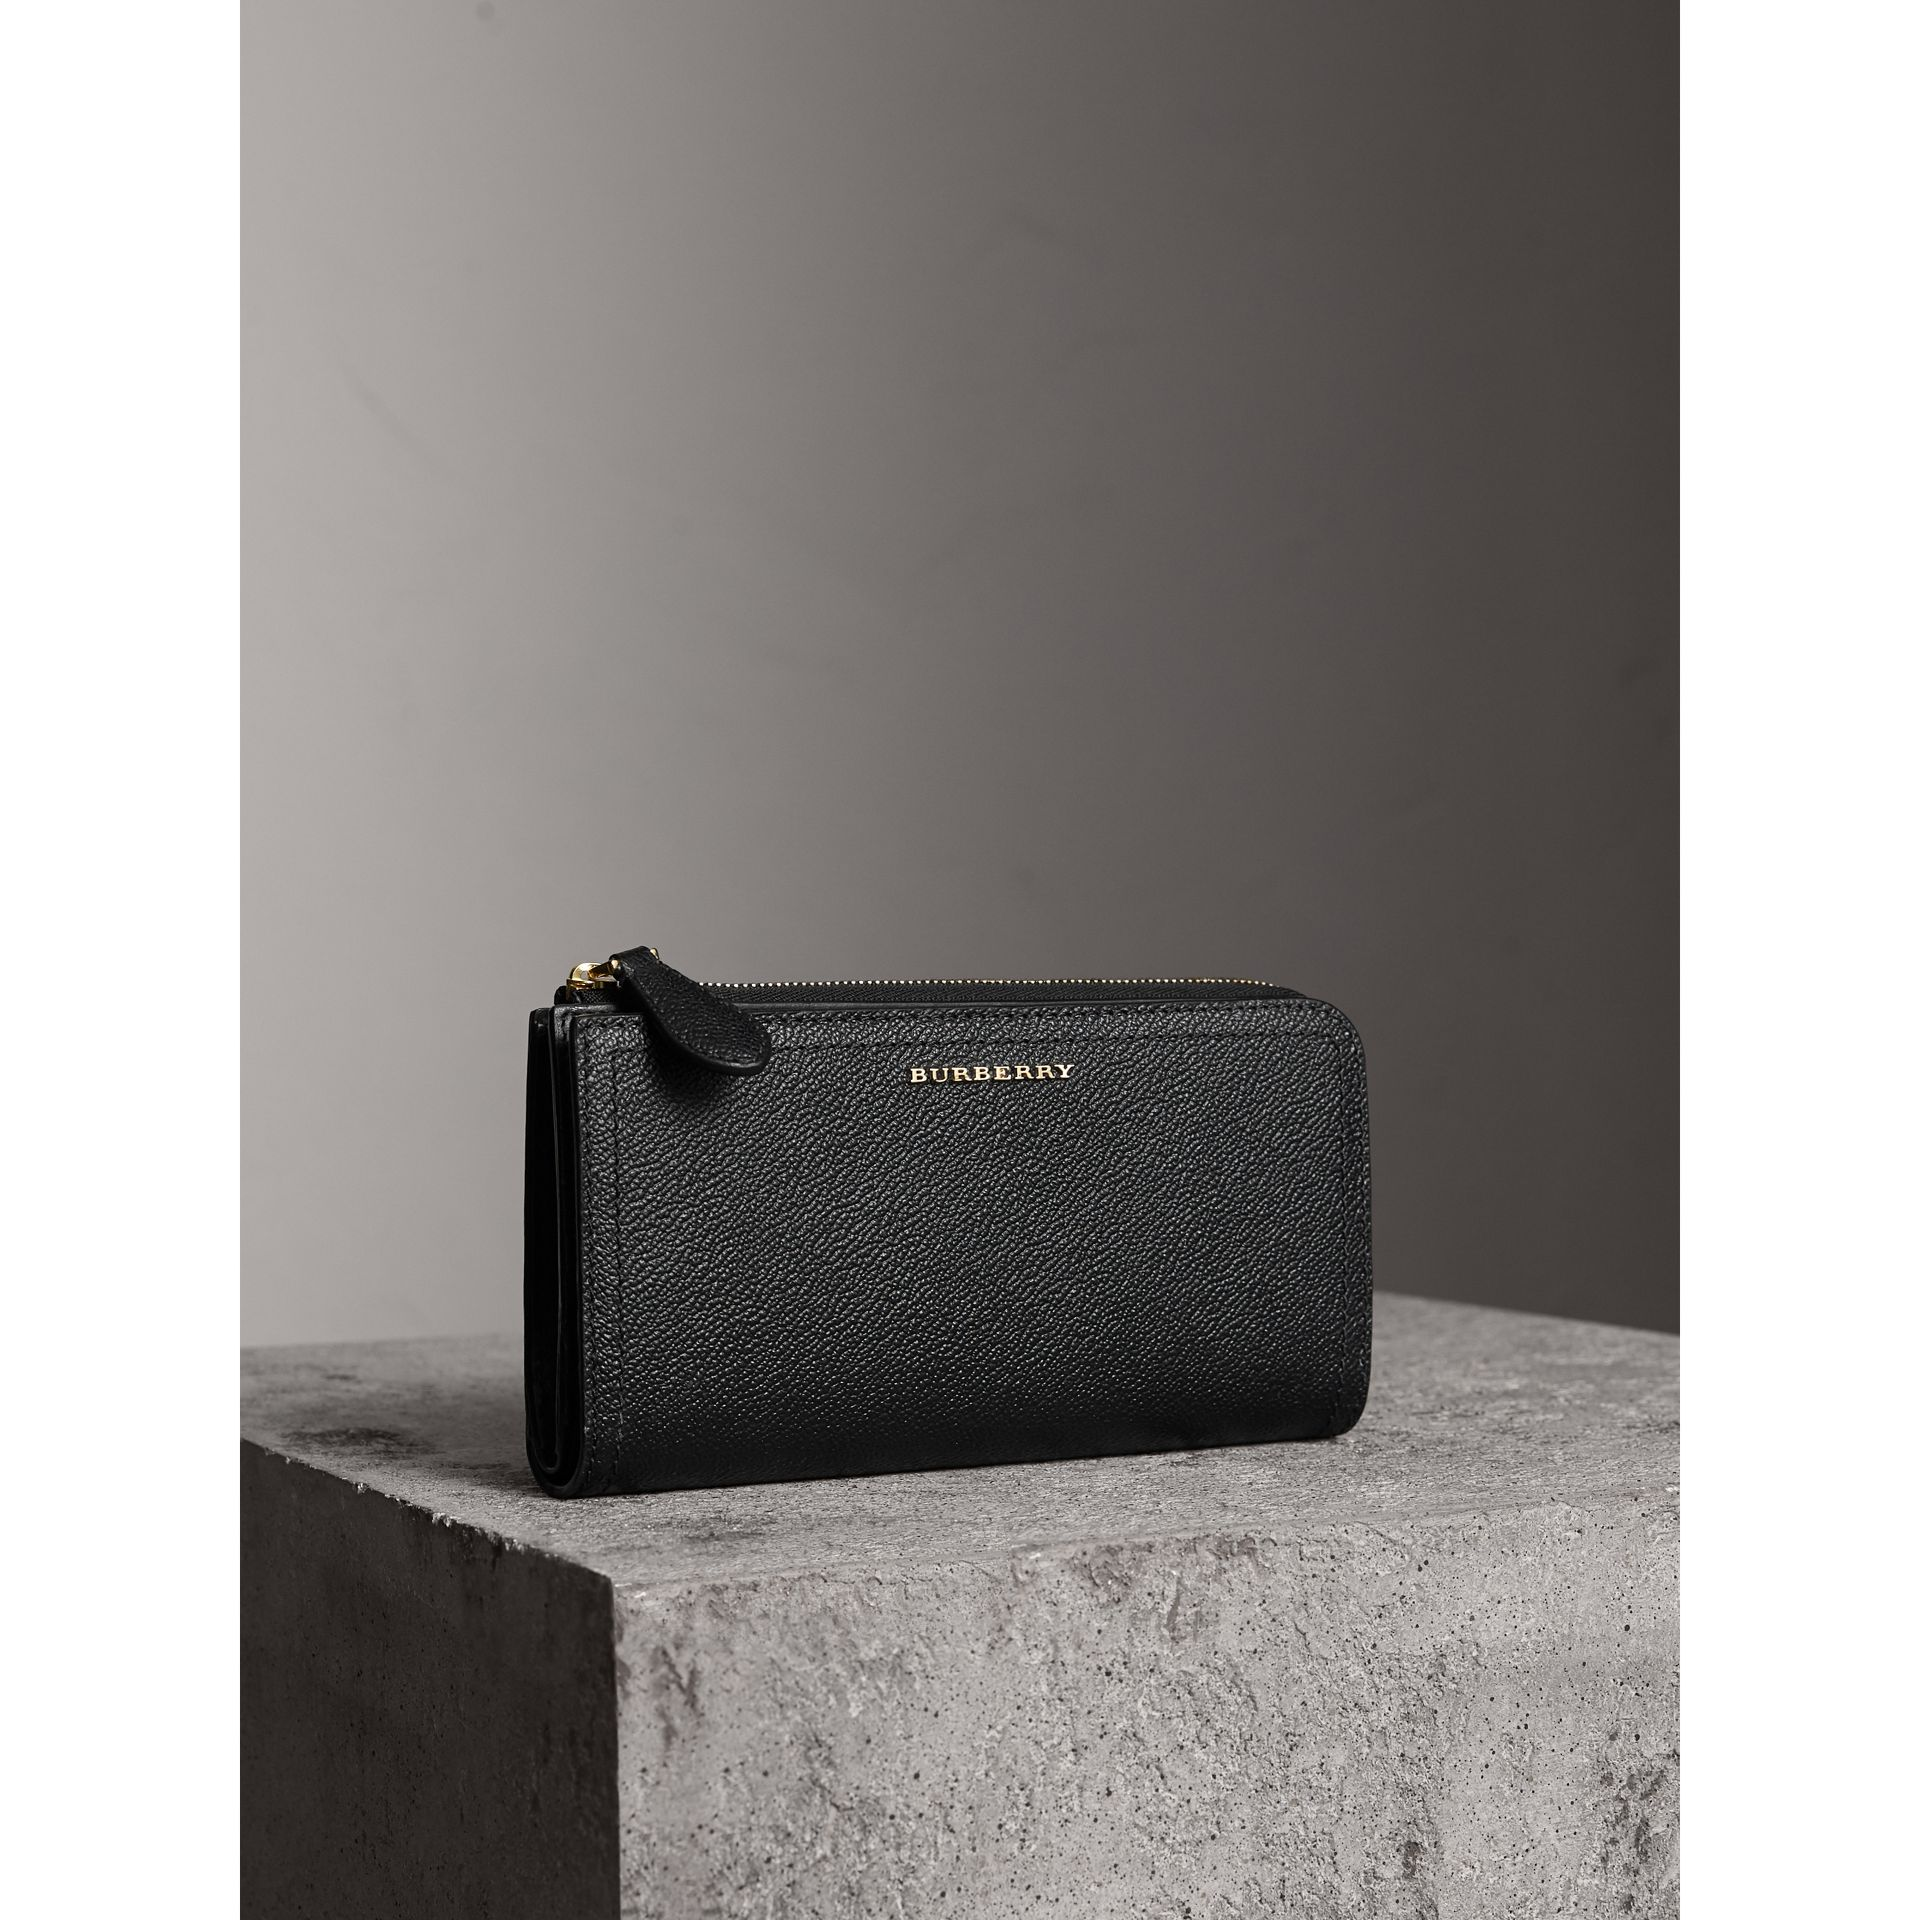 Grainy Leather Ziparound Wallet in Black - Women | Burberry Australia - gallery image 1